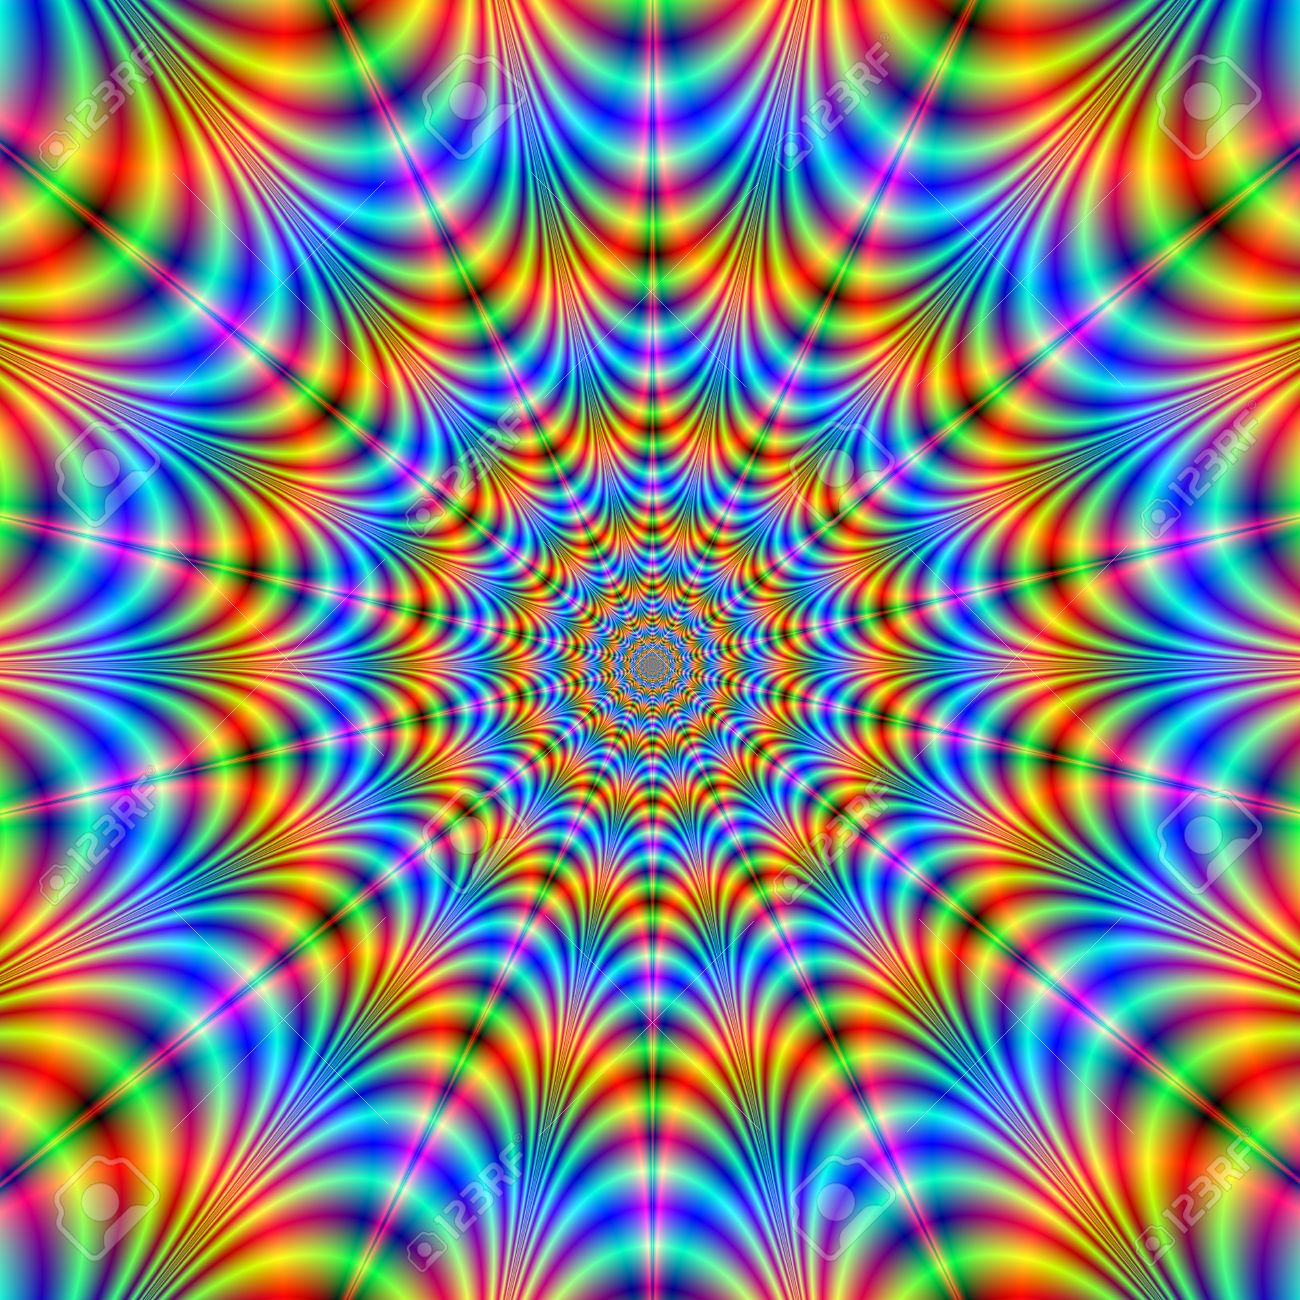 HQ Psychedelic Wallpapers | File 342.5Kb